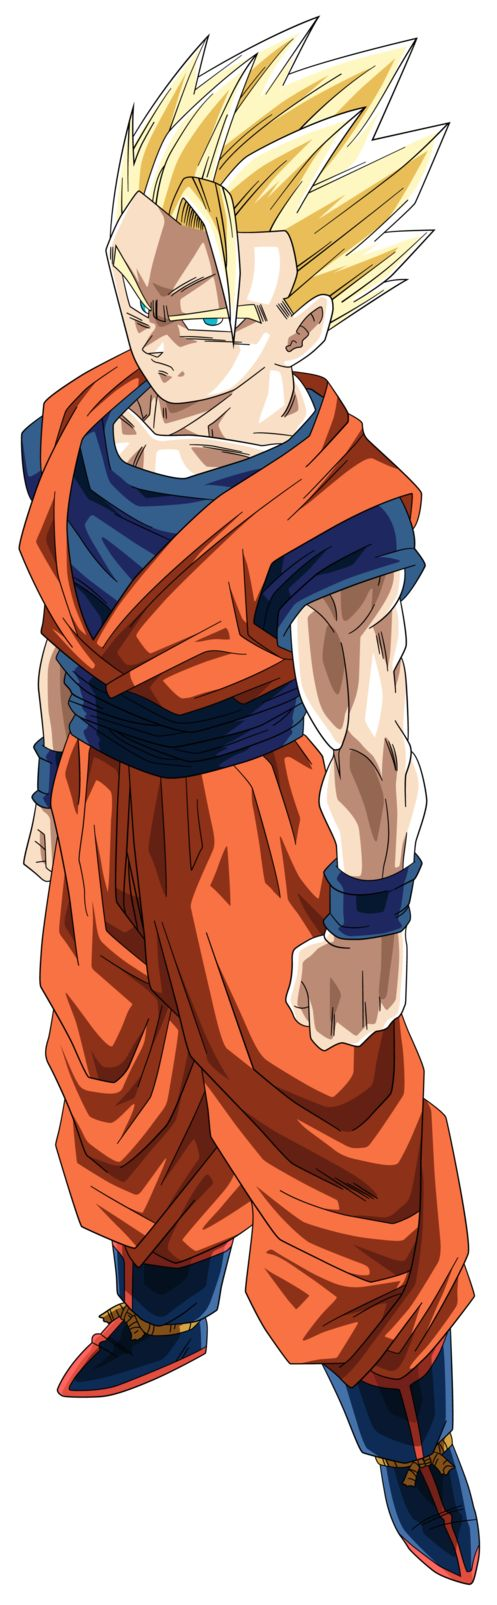 228 best Anime images on Pinterest | Dragon ball, Dragons and ...